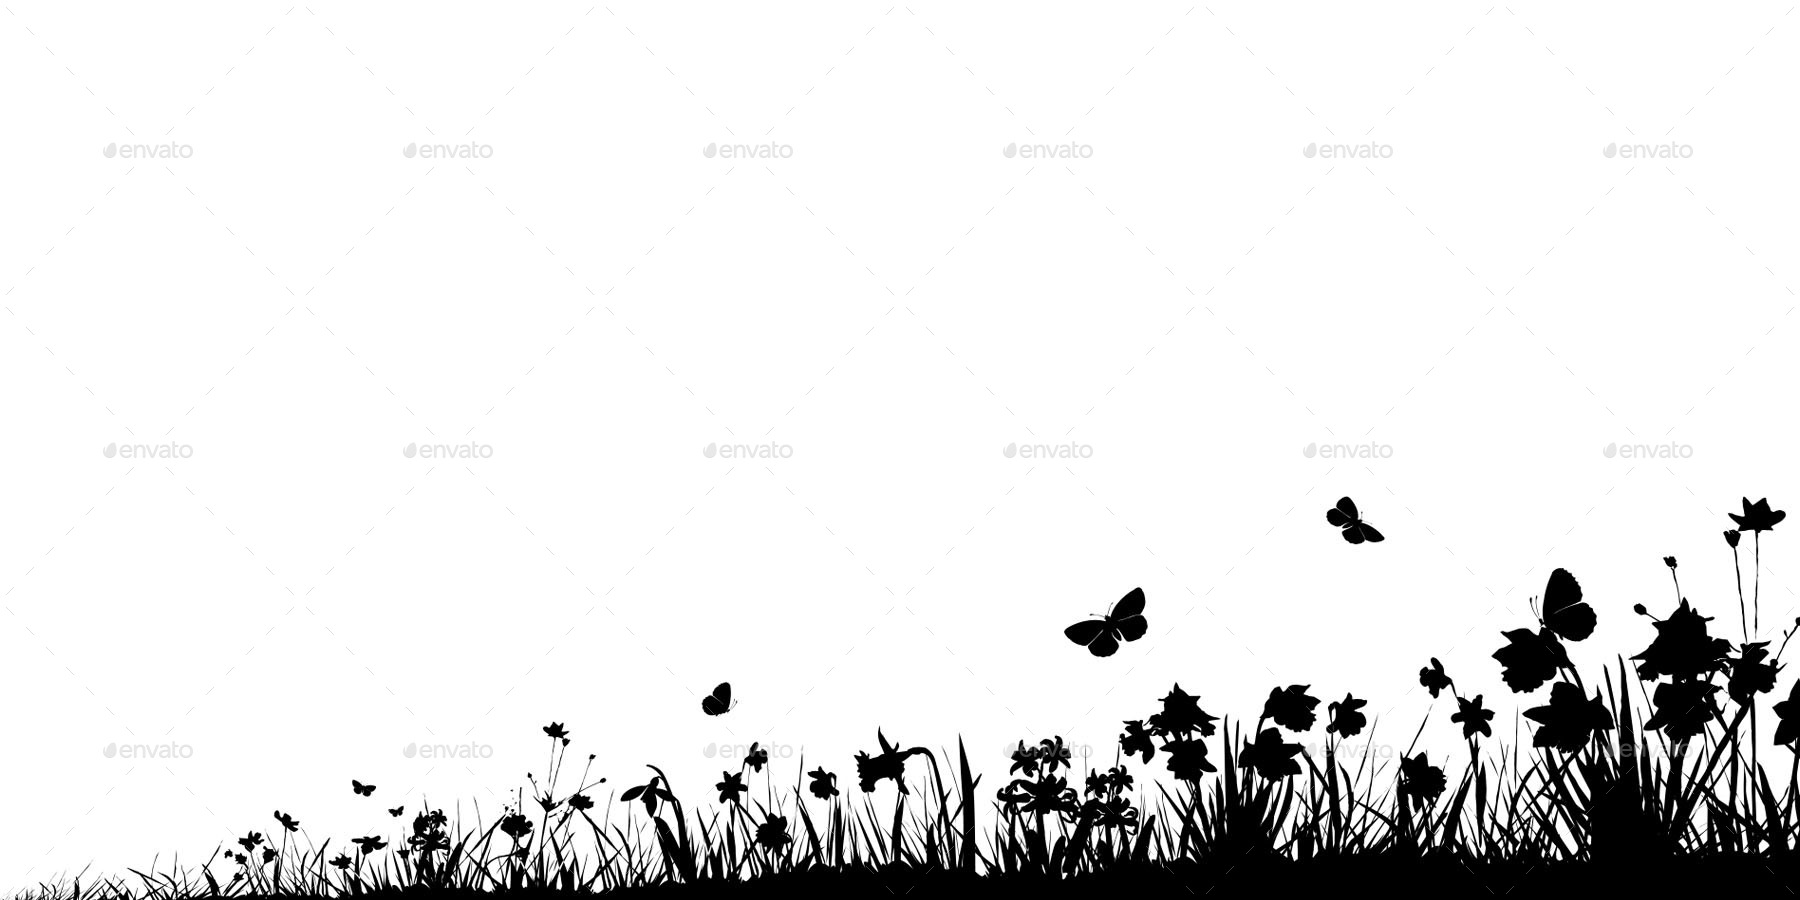 spring silhouettes backgrounds by fordollardeur